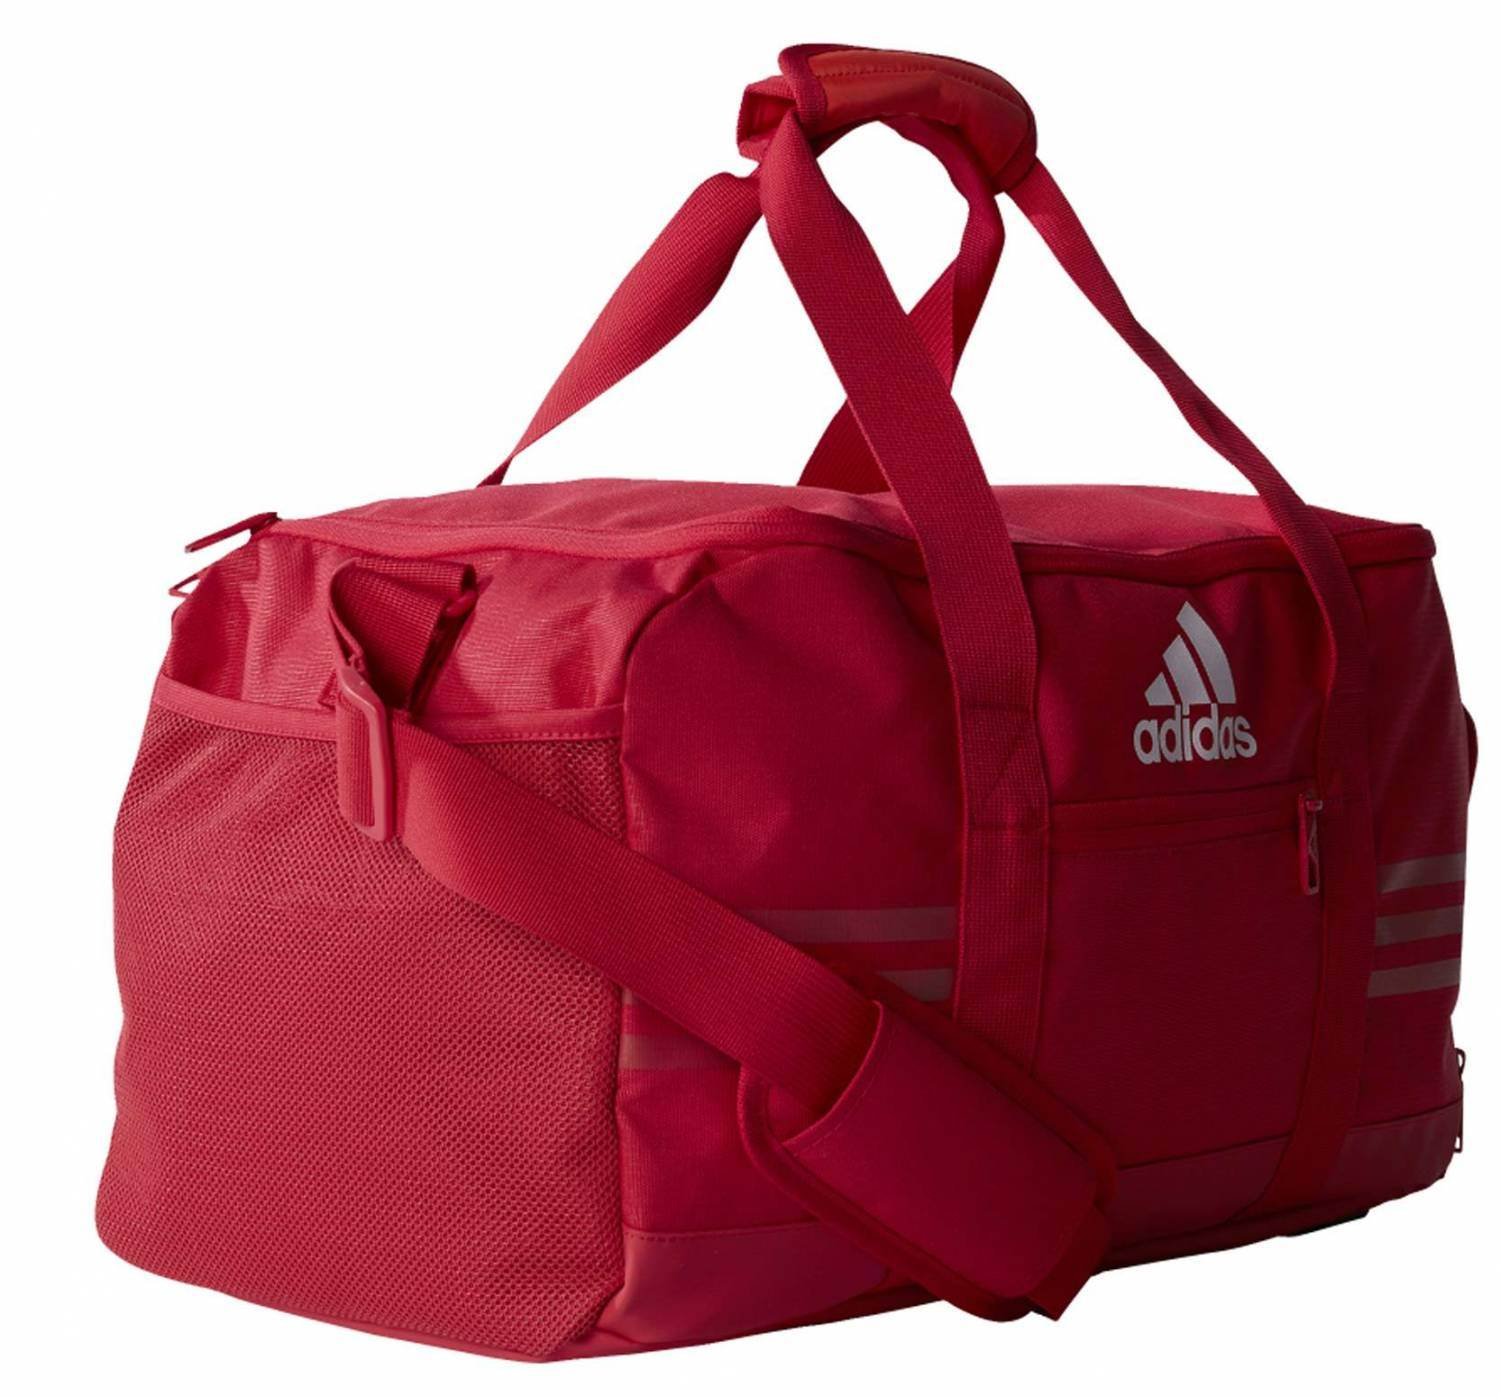 adidas 3s performance teambag small sporttasche farbe. Black Bedroom Furniture Sets. Home Design Ideas